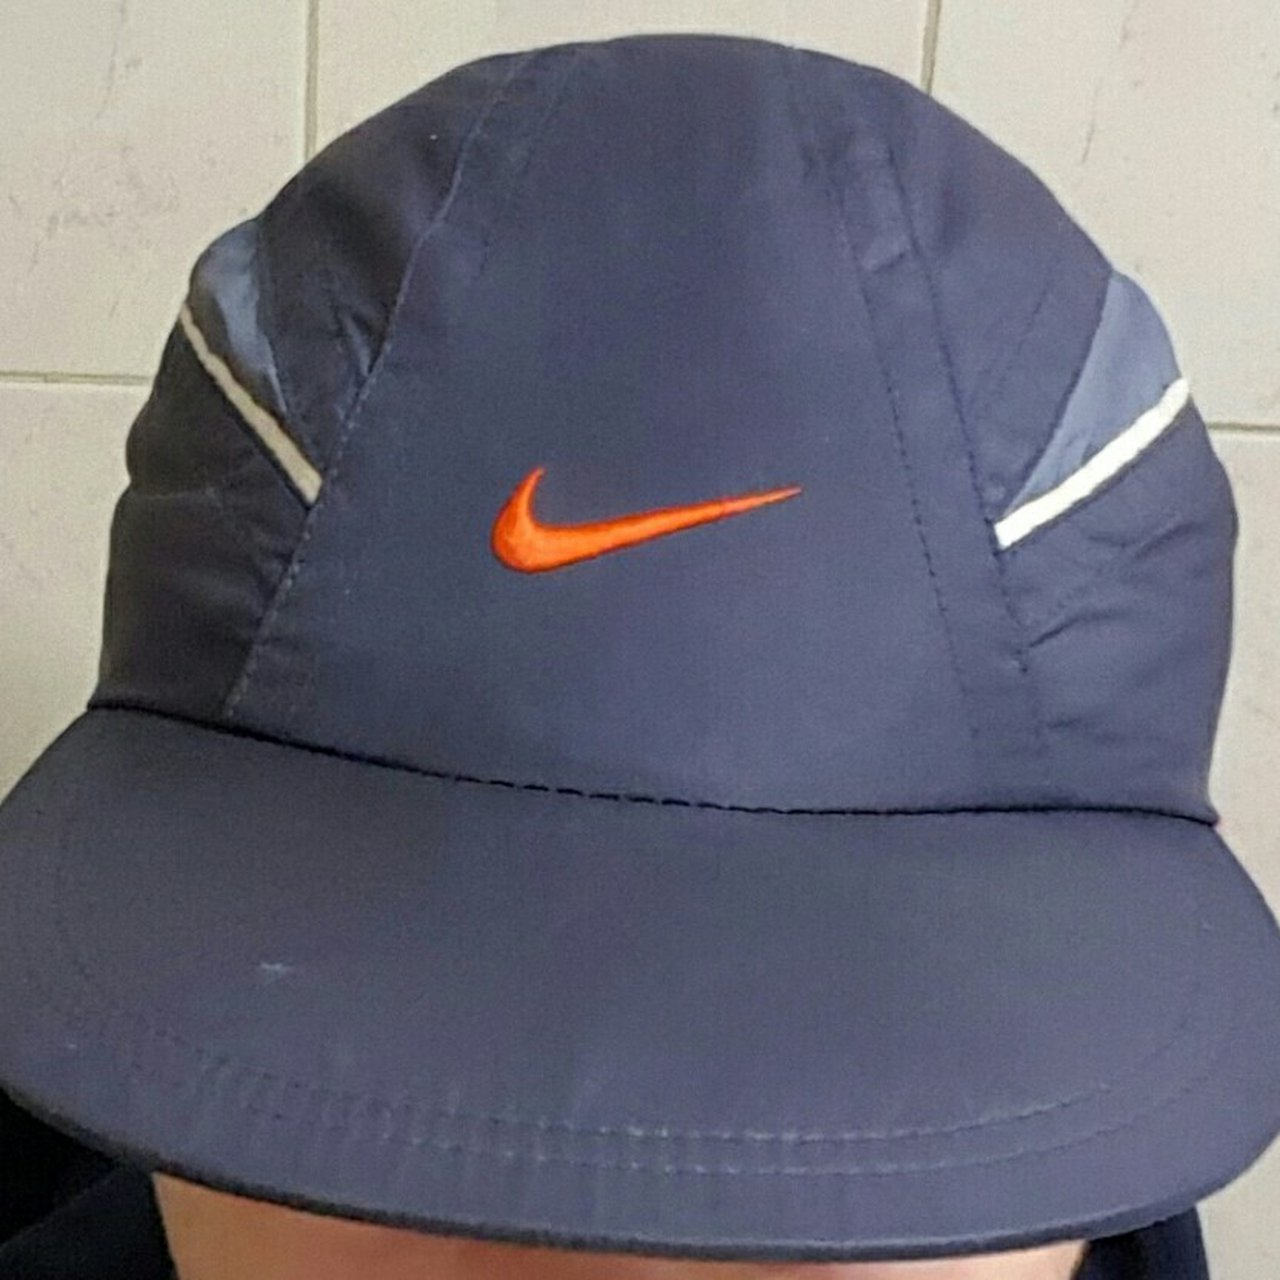 Nike clima fit climafit thin stripe hat cap LOOKING FOR - Depop 9bc9b3642b2